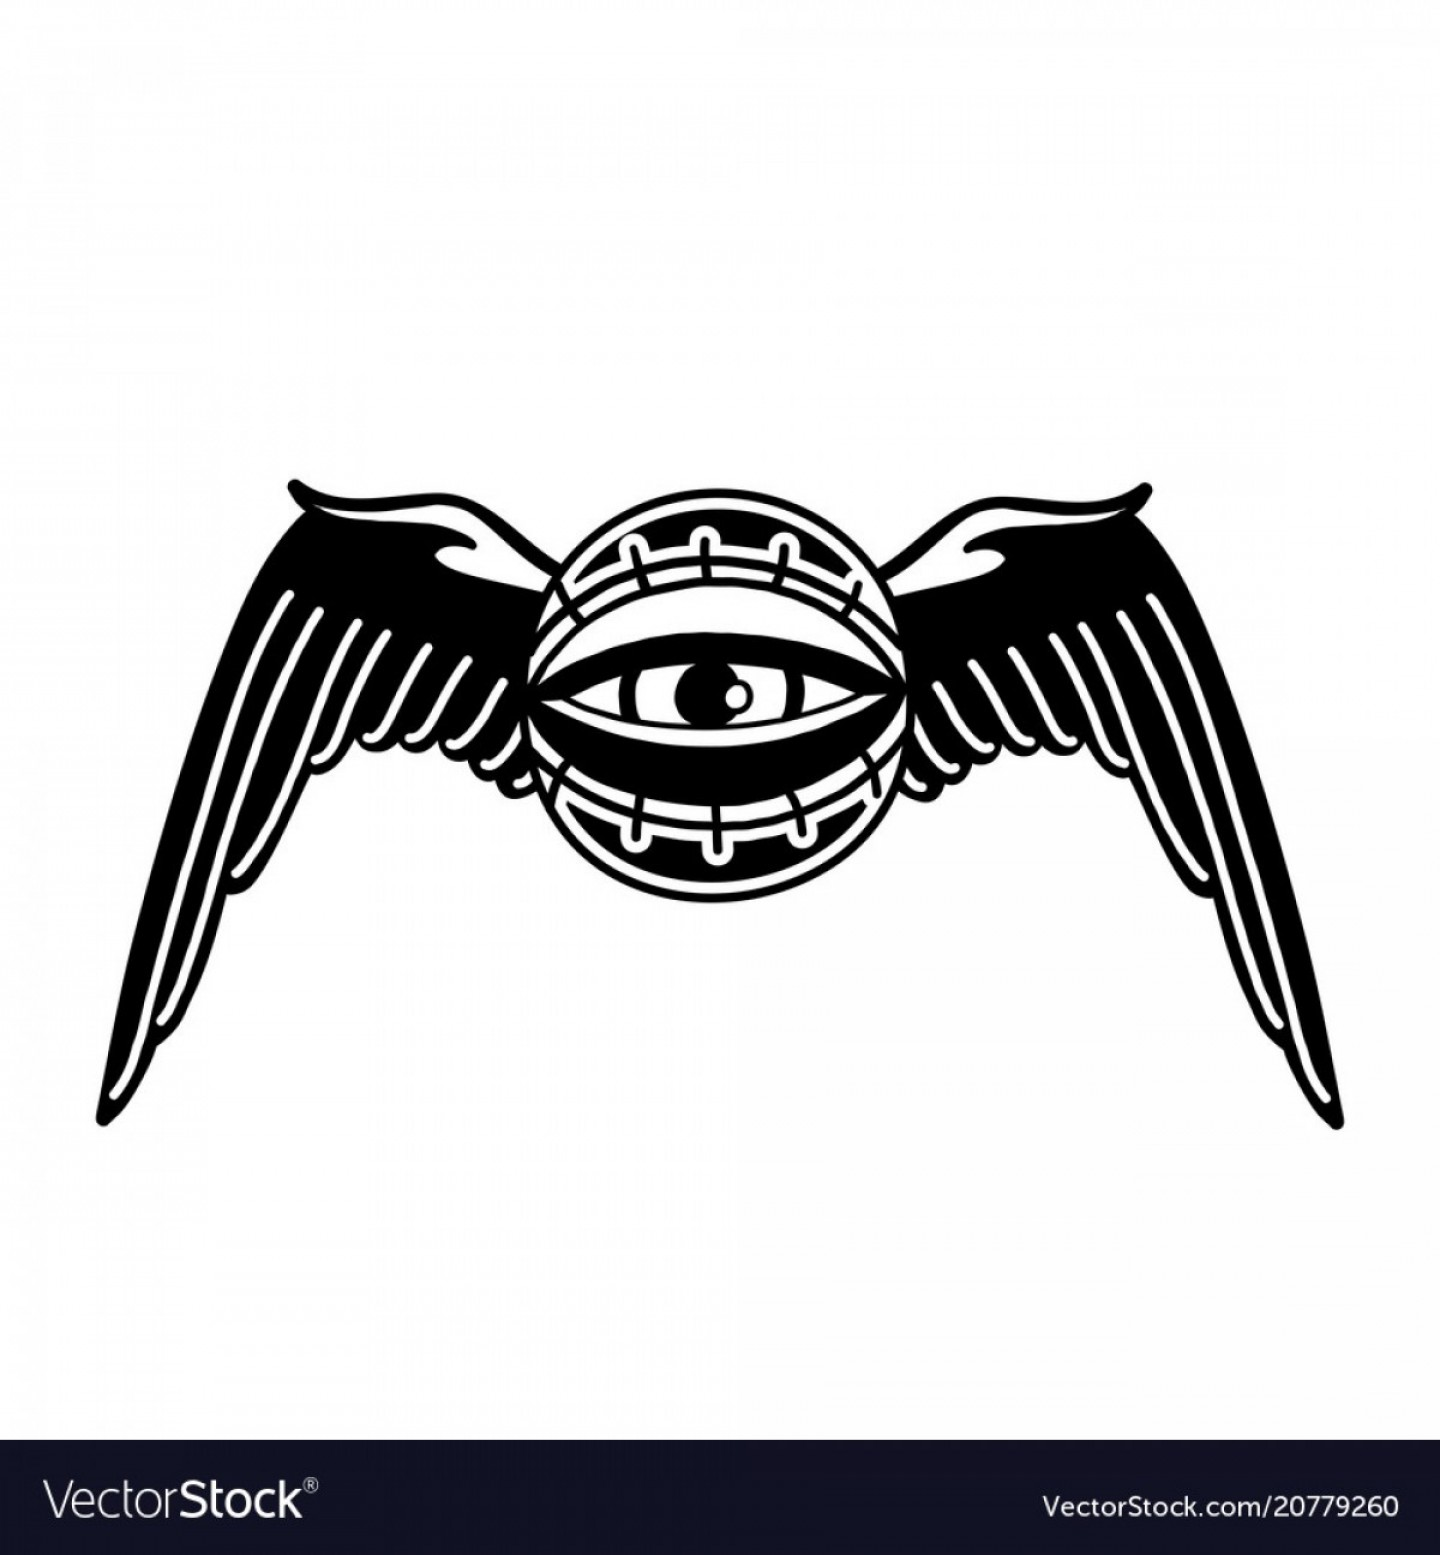 Mislo Toe Vector Art: Graphic Winged All Seeing Eye Vector